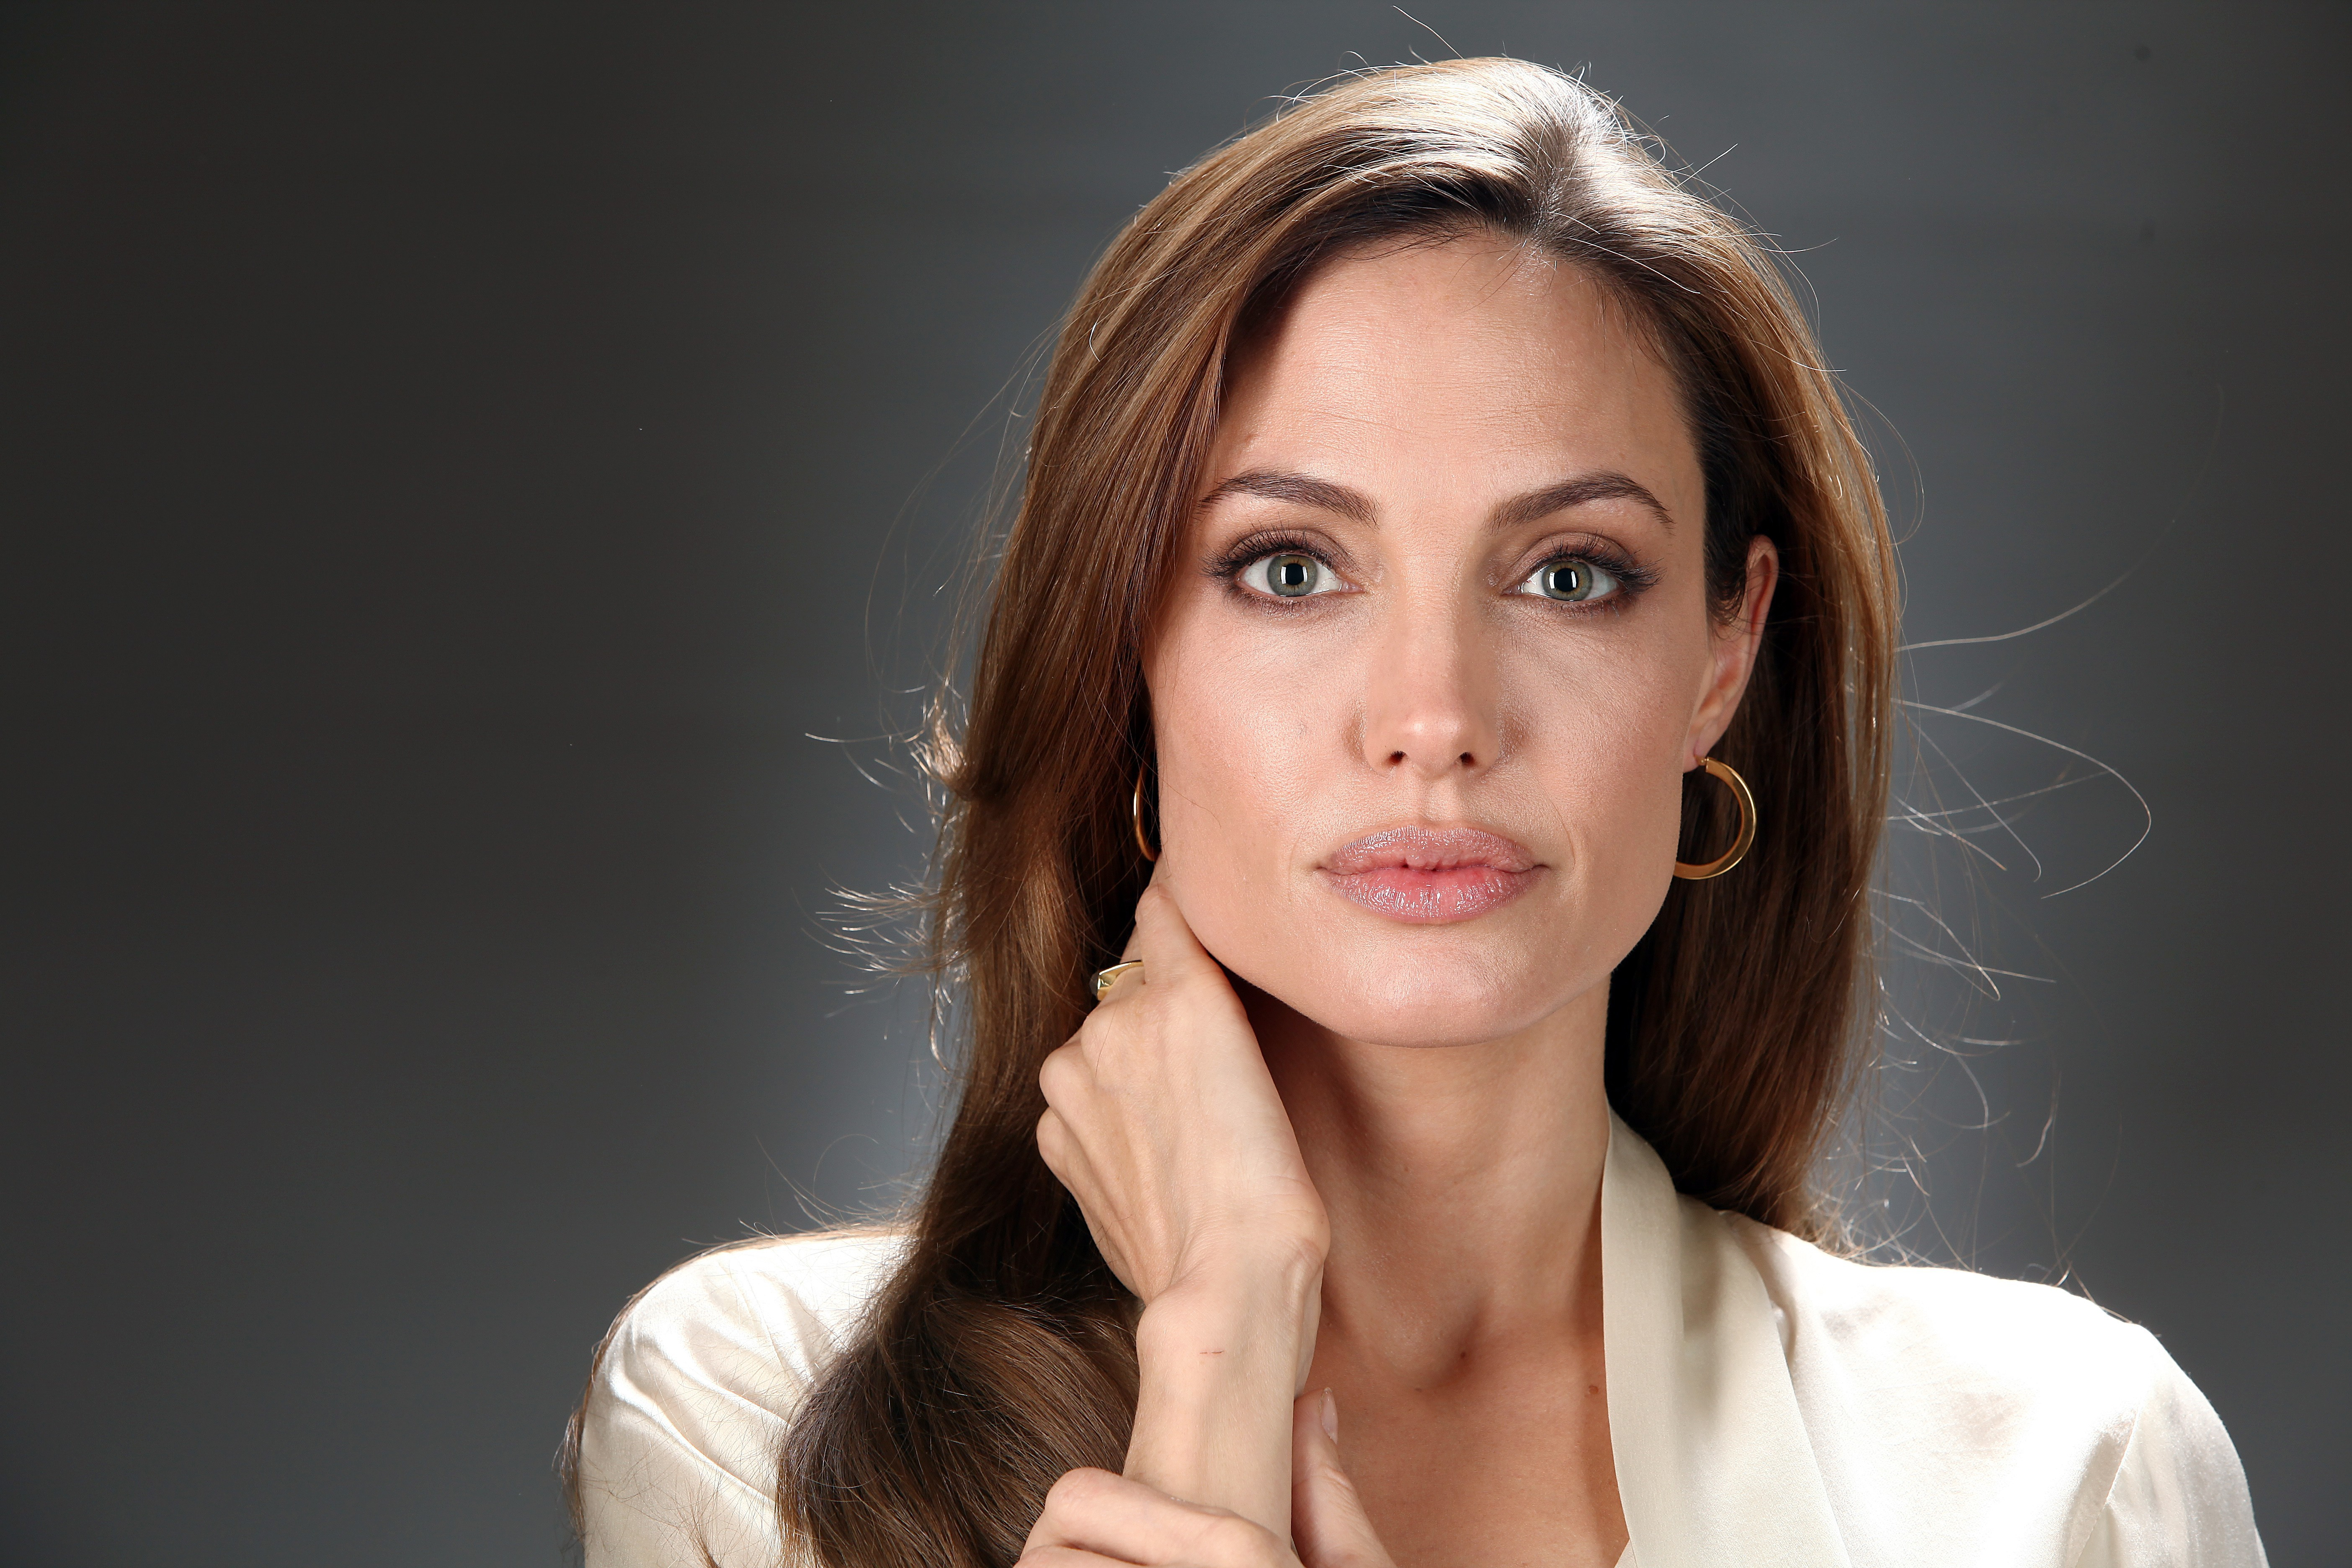 Angelina High picture 18